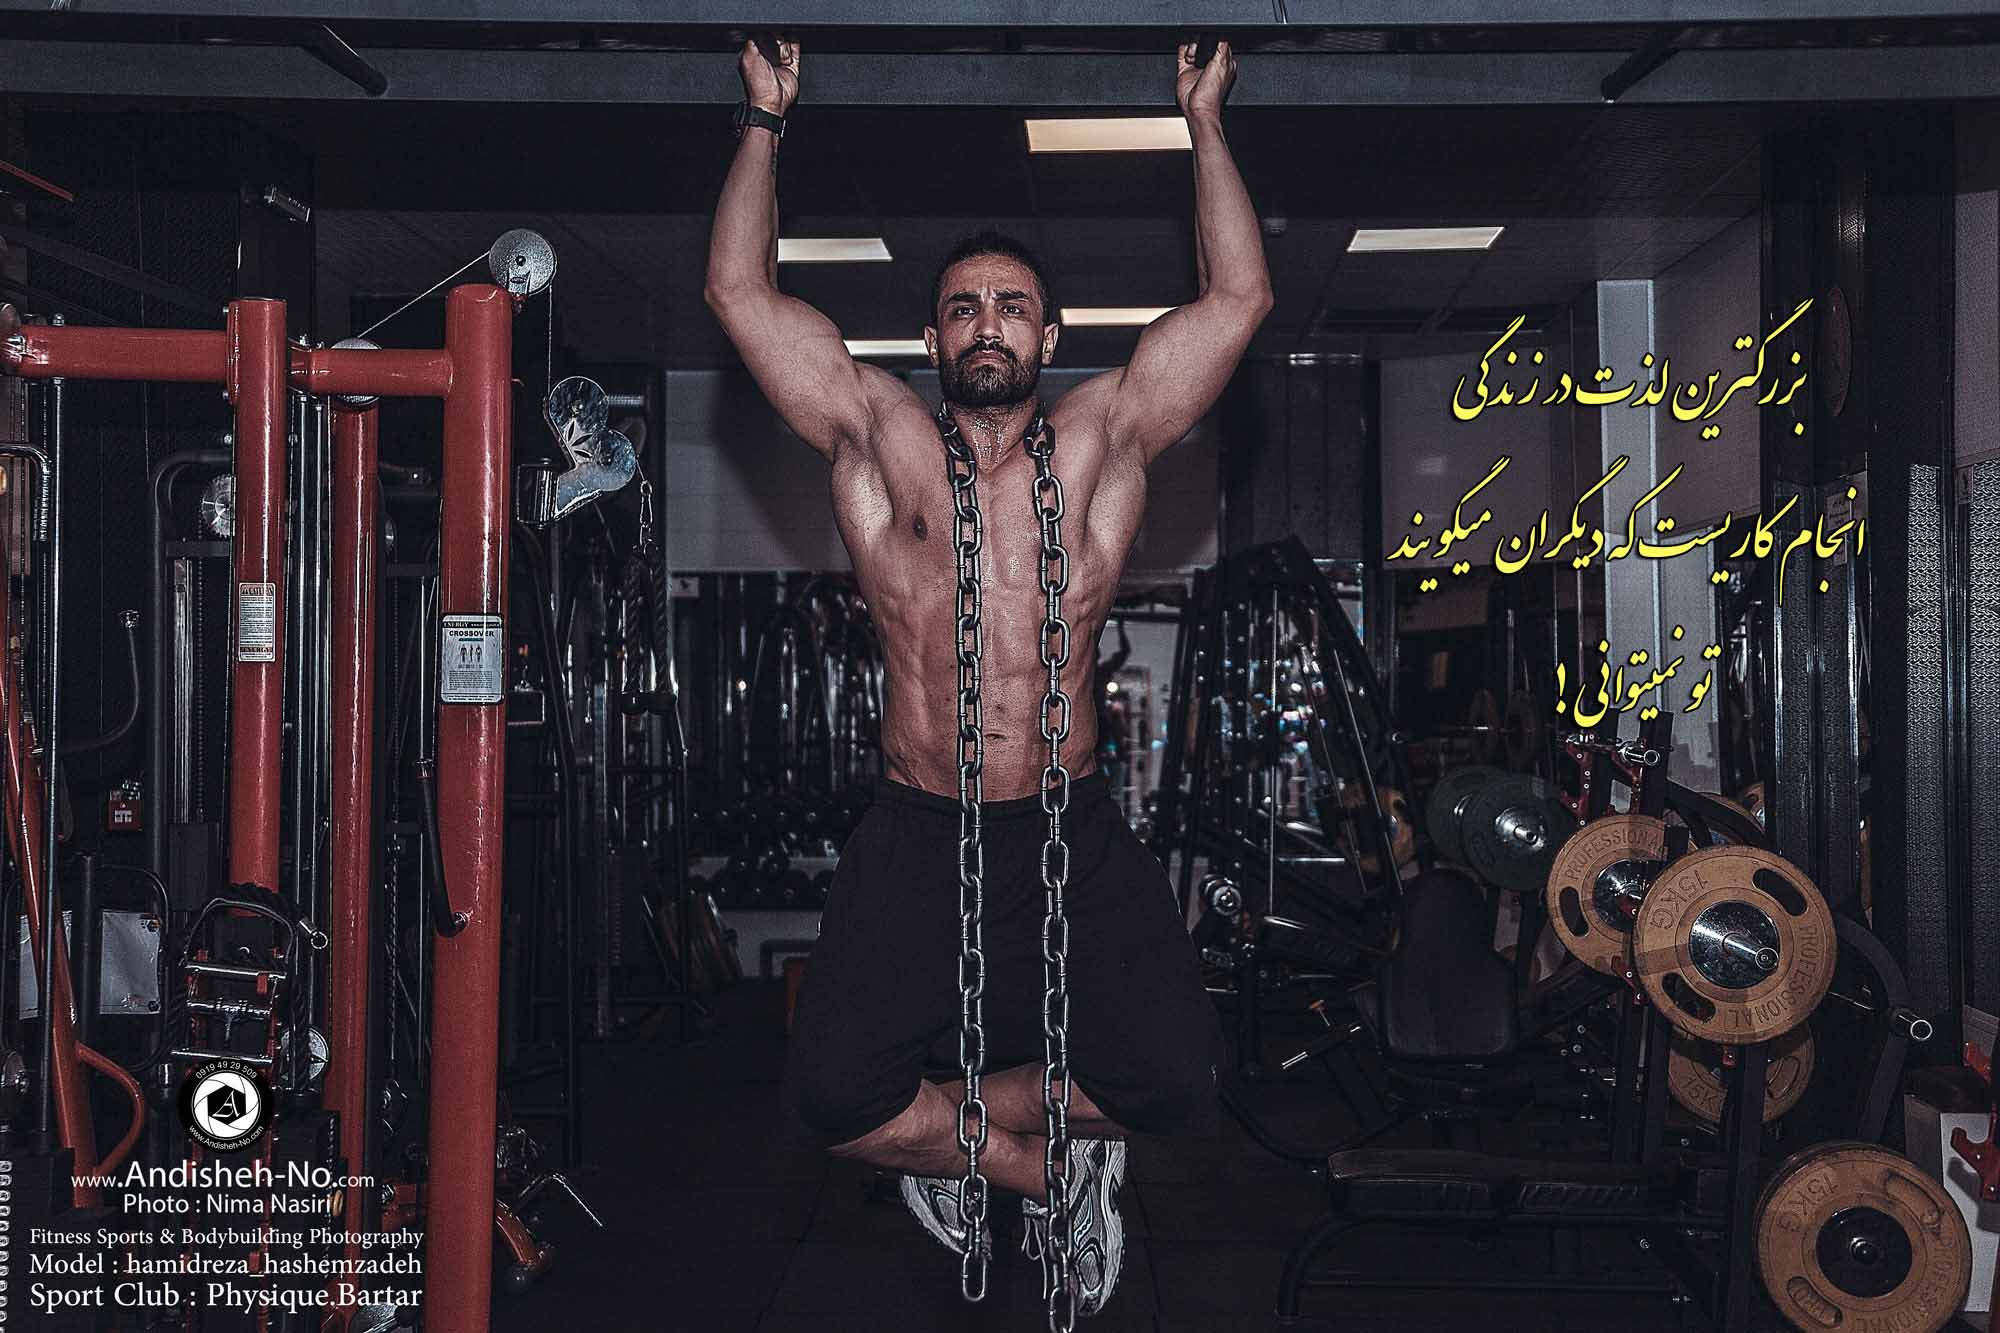 Fitness Sports Photography, Bodybuilding & Body Management Sports Club physiqye bartar modeling photographer studio andisheh no photo nima nasiri